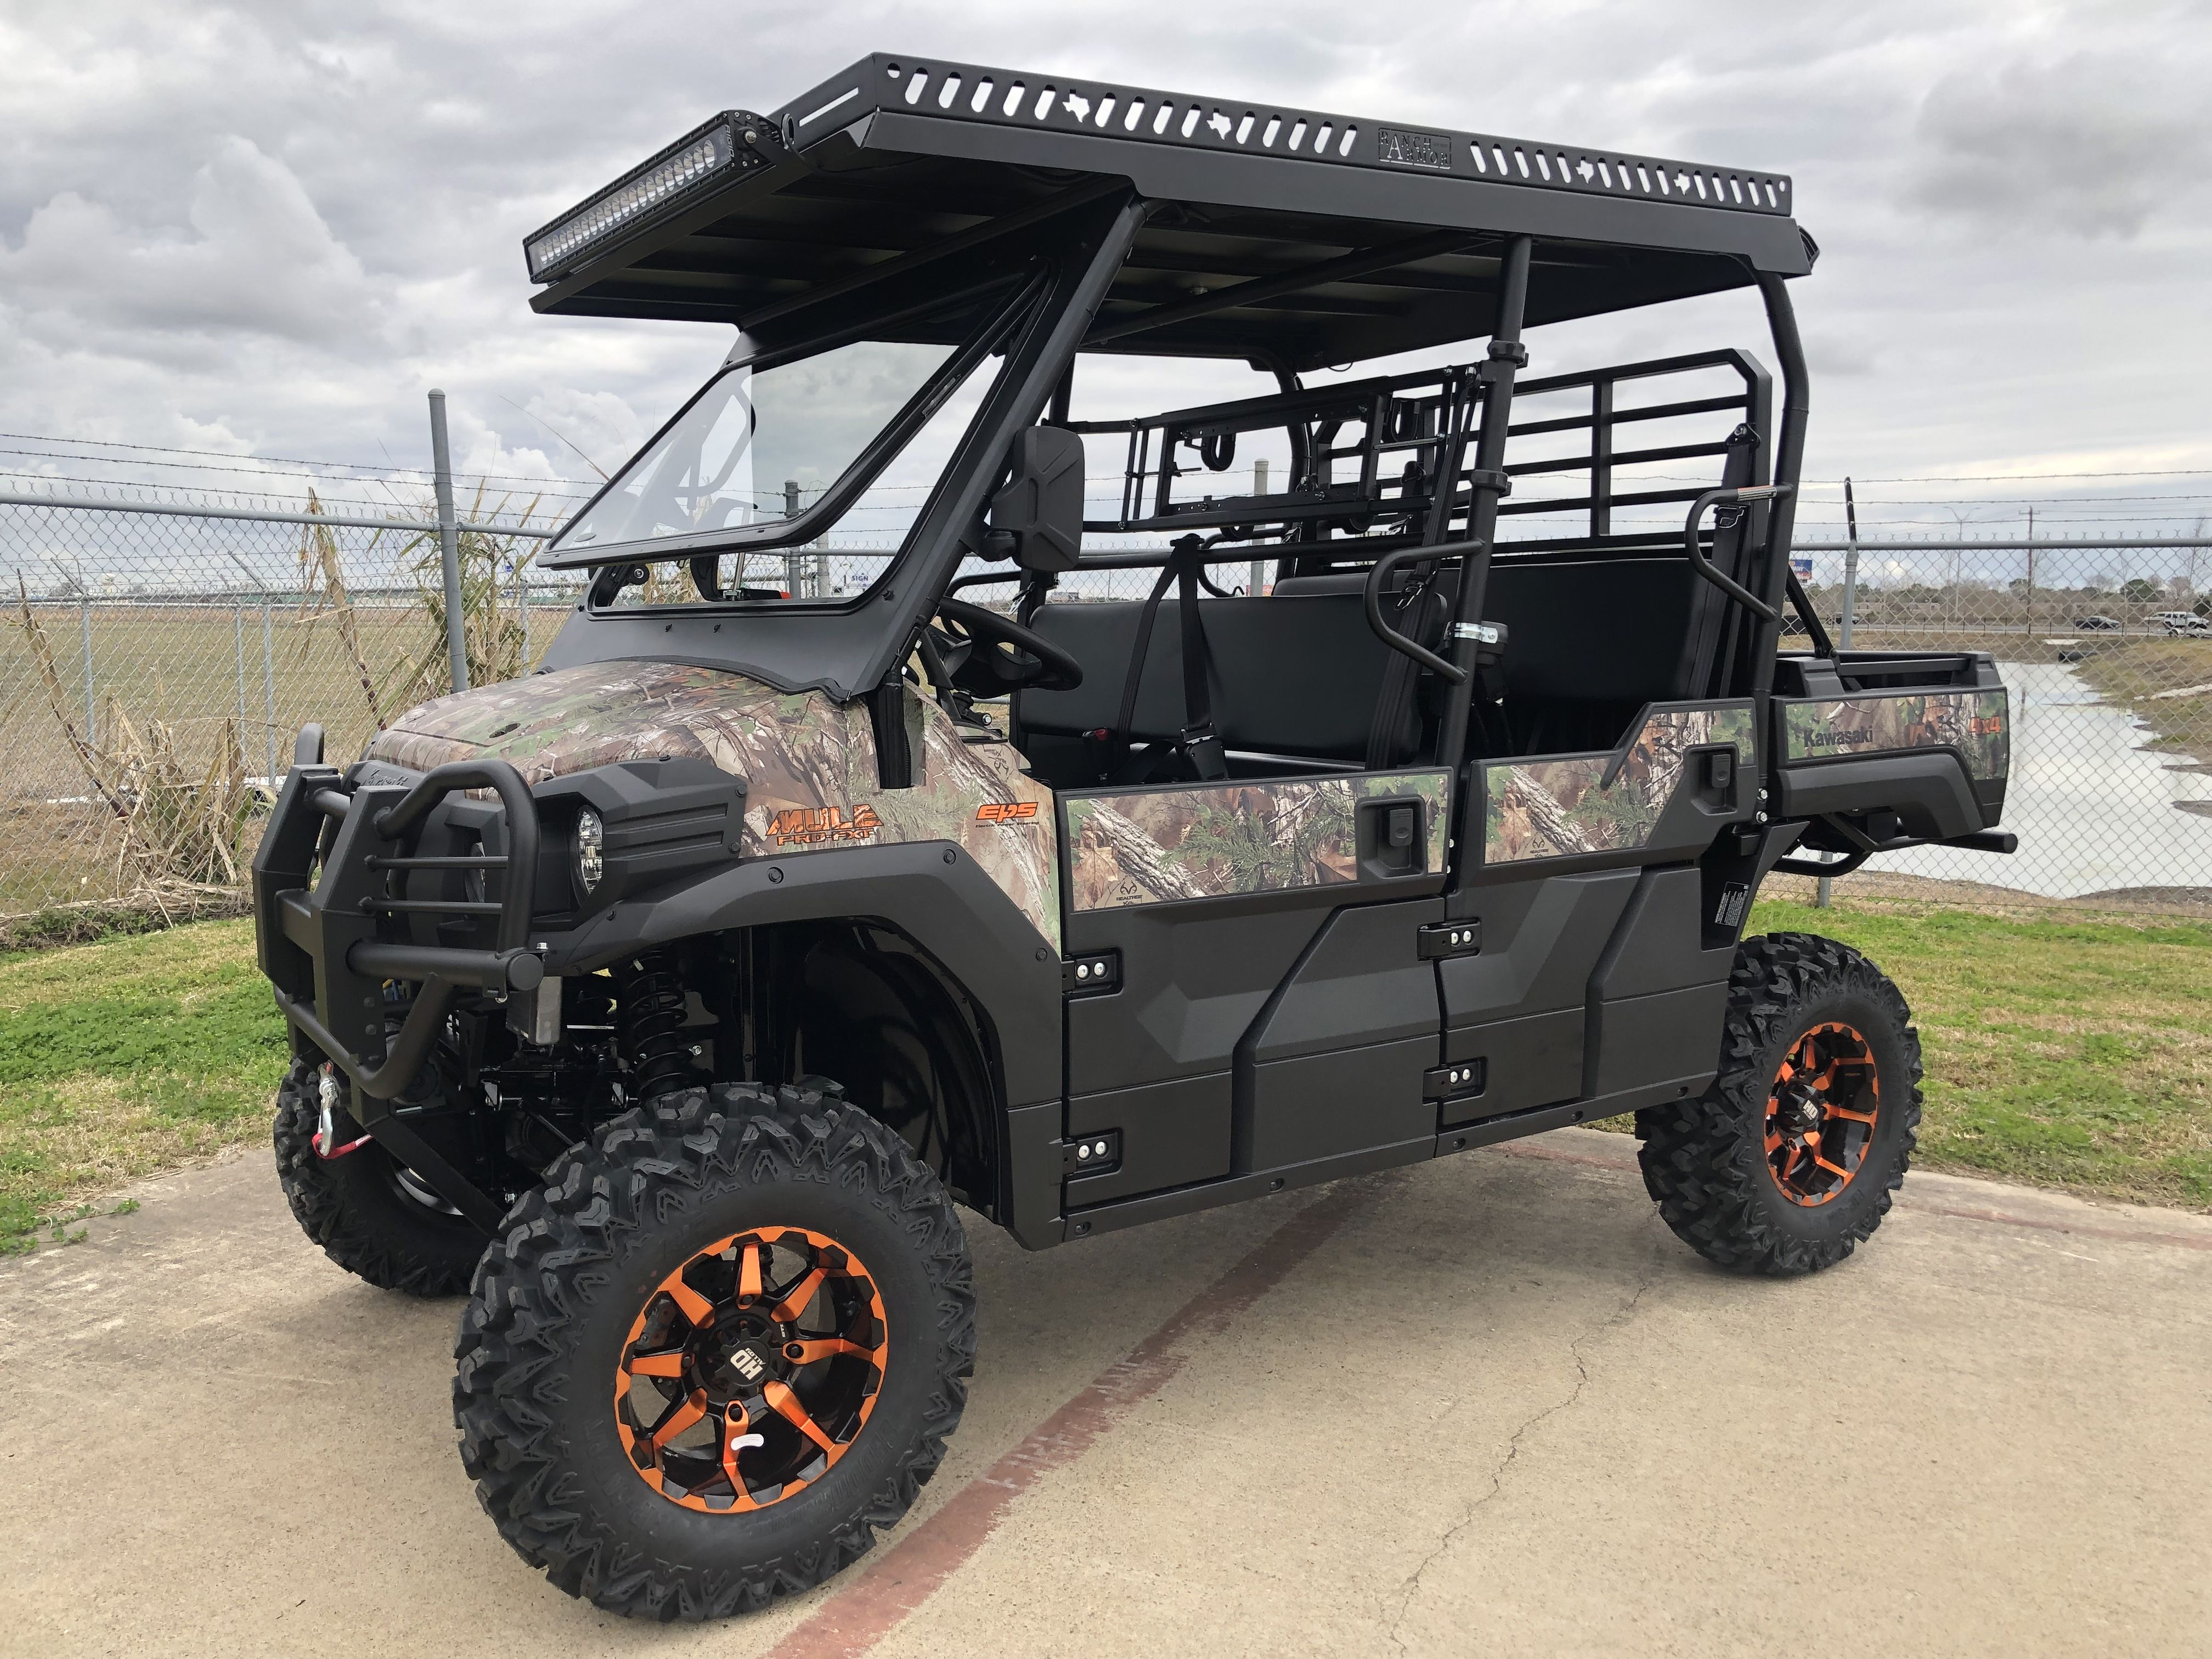 Check our our latest Mule Pro FXT build that went home with